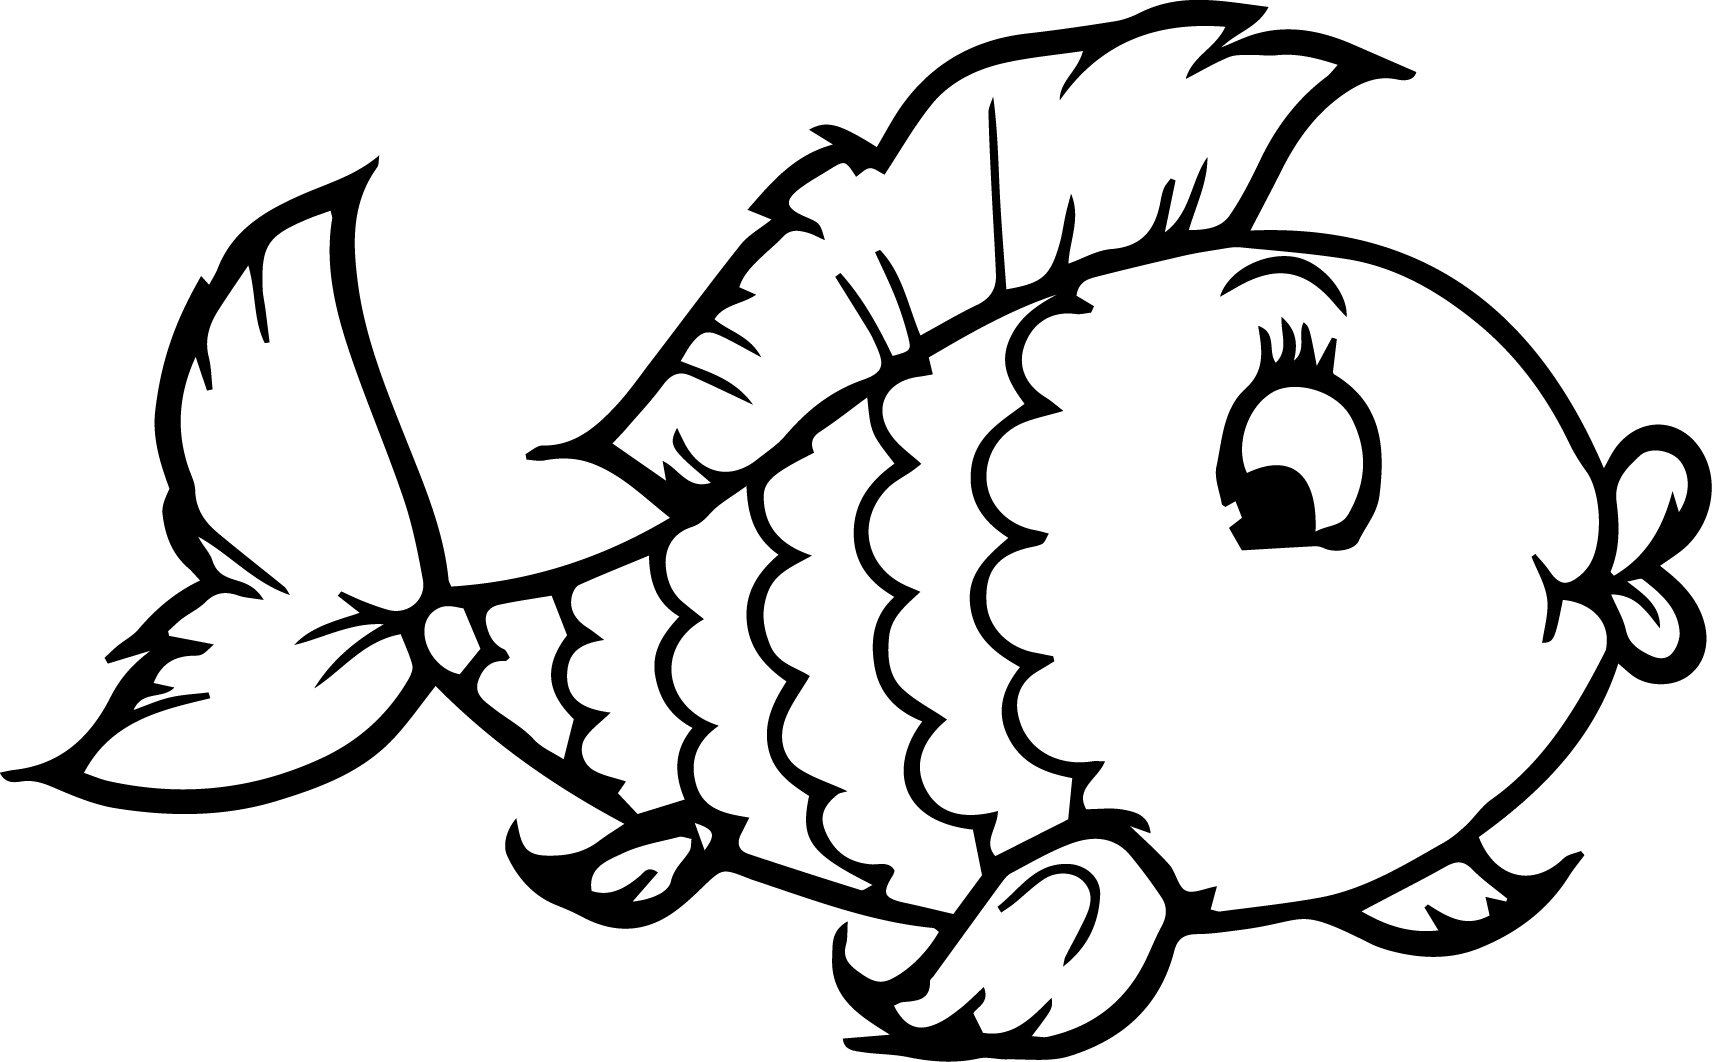 1712x1062 Image Cartoon Fish Coloring Pages 98 About Remodel Line Drawings